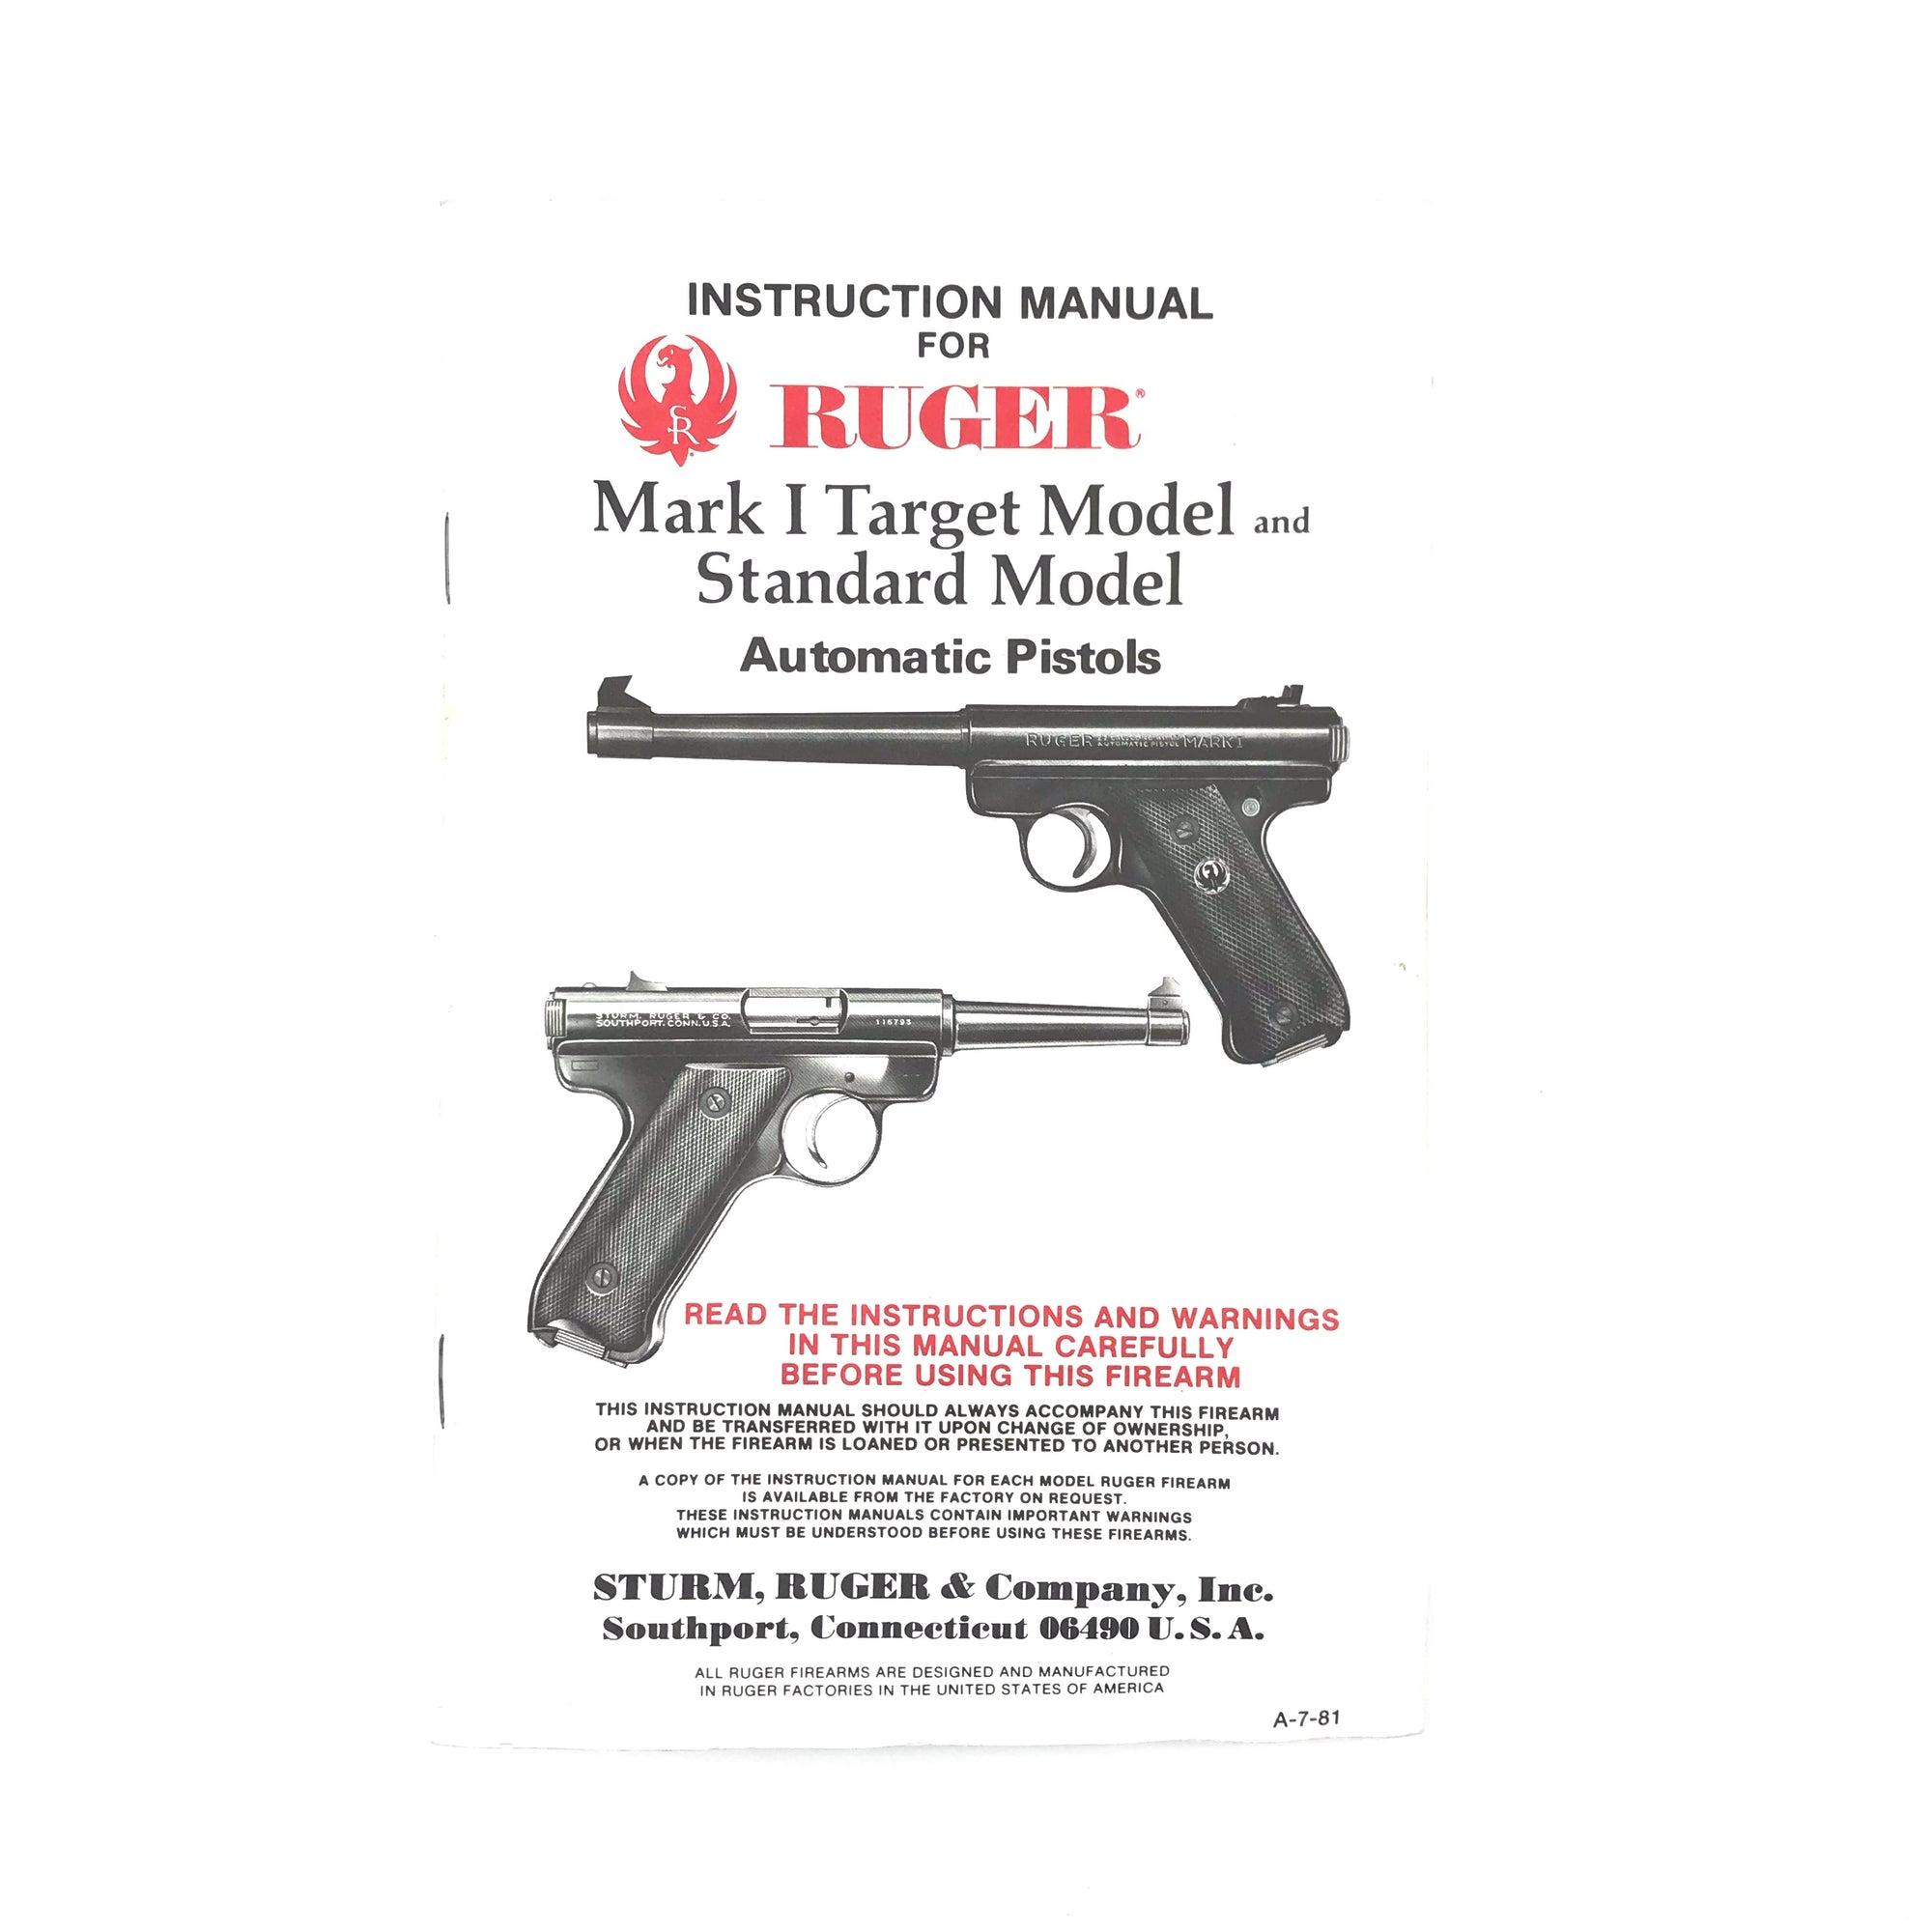 Ruger Instruction Manual Mark I Target Model & Standard Model (1981)